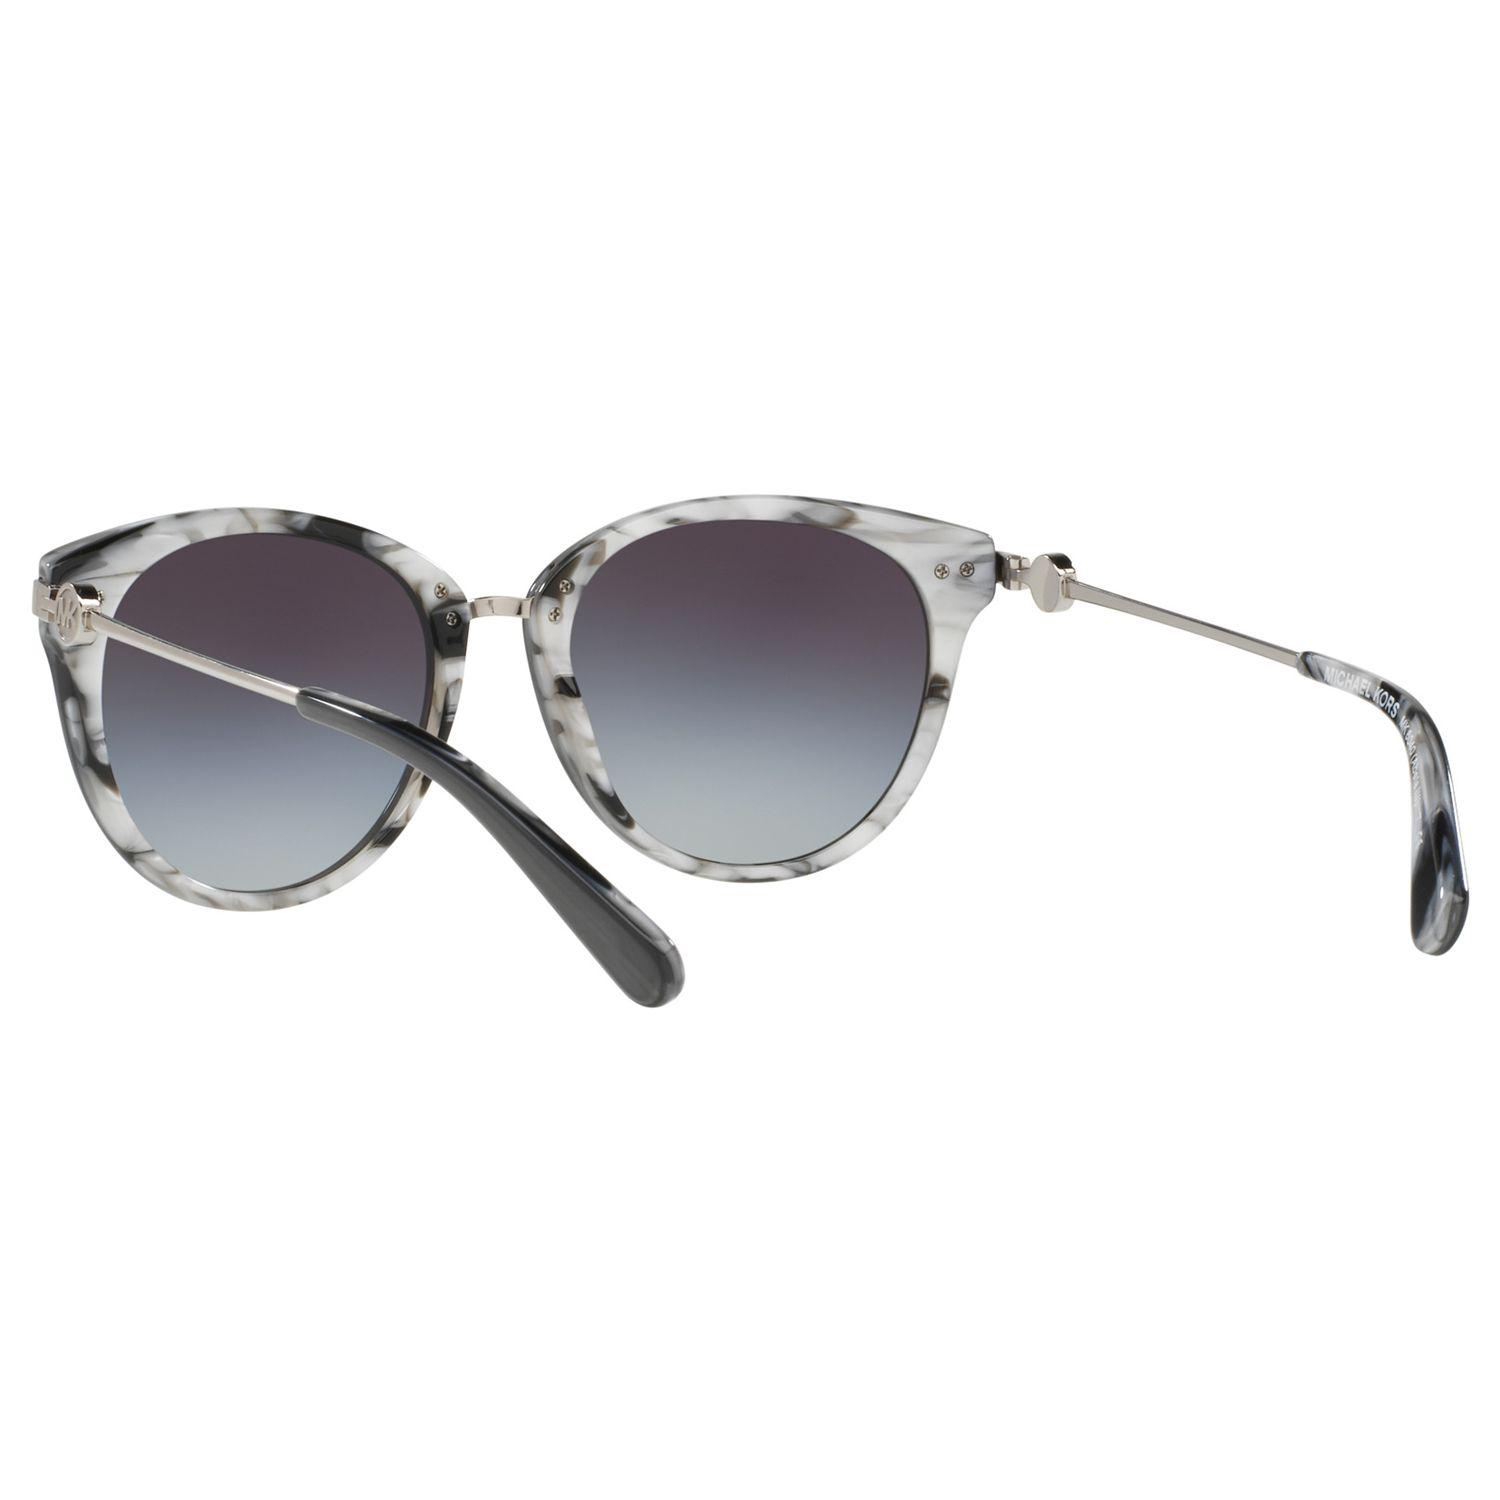 Michael Kors Mk6040 Abela Iii Round Sunglasses in Grey